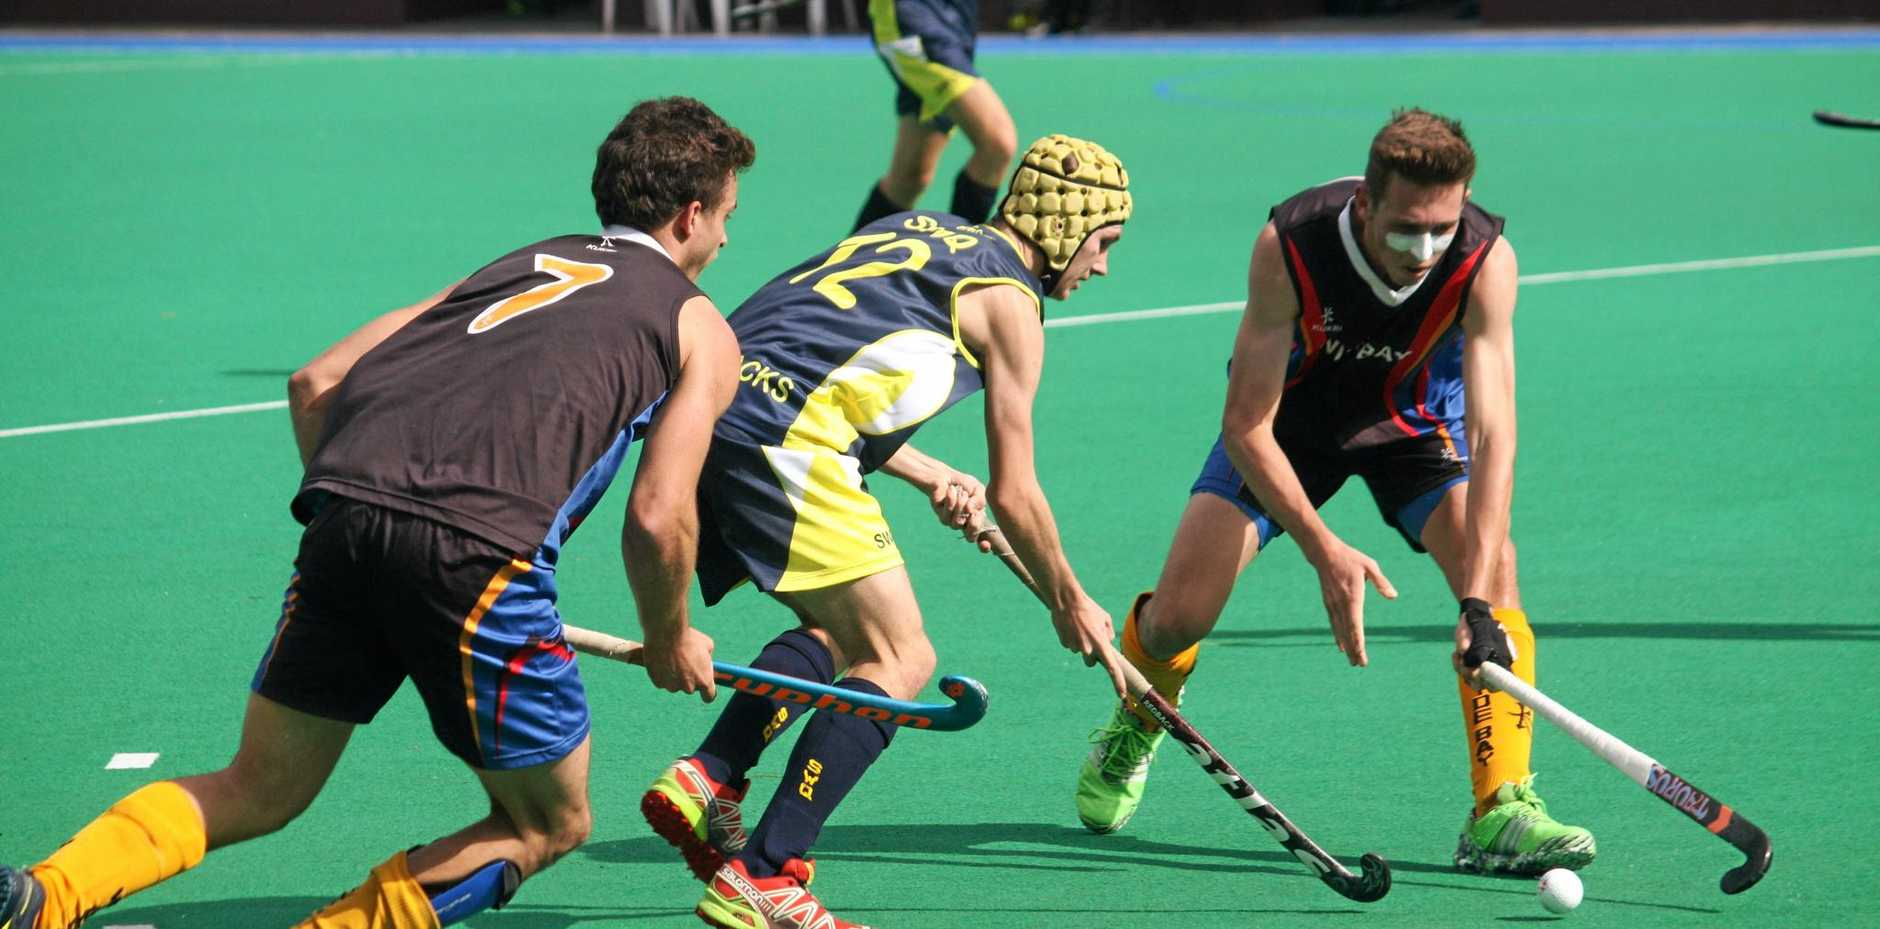 Ipswich and South West Queensland hockey player Nathan Smith is leading an Ipswich composite side this weekend.